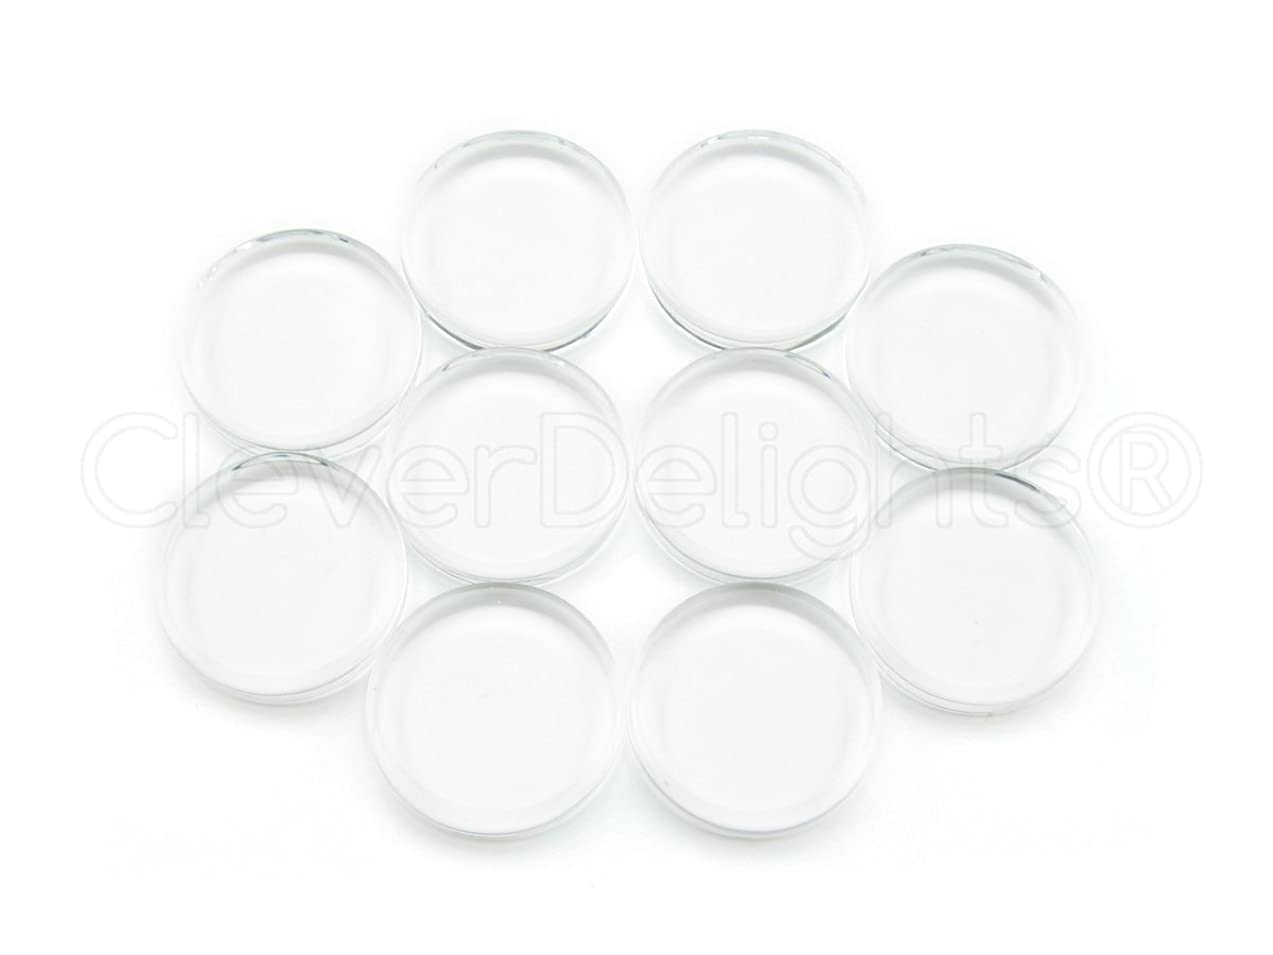 25 CleverDelights 16mm Round Glass Tiles - 5/8